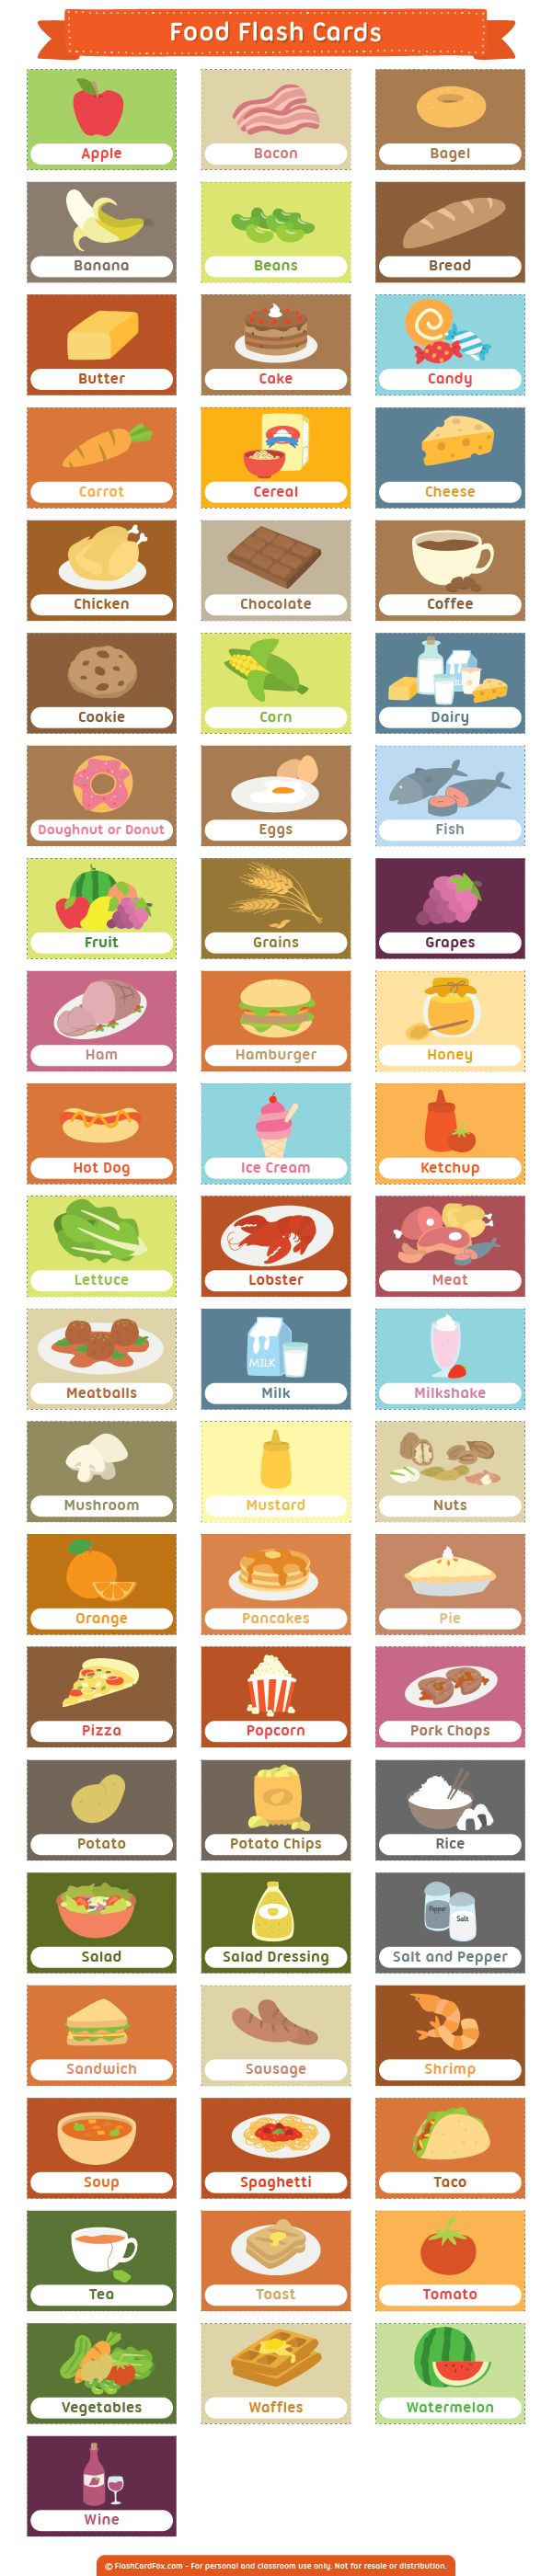 Free printable food flash cards. Download them in PDF format at http://flashcardfox.com/download/food-flash-cards/